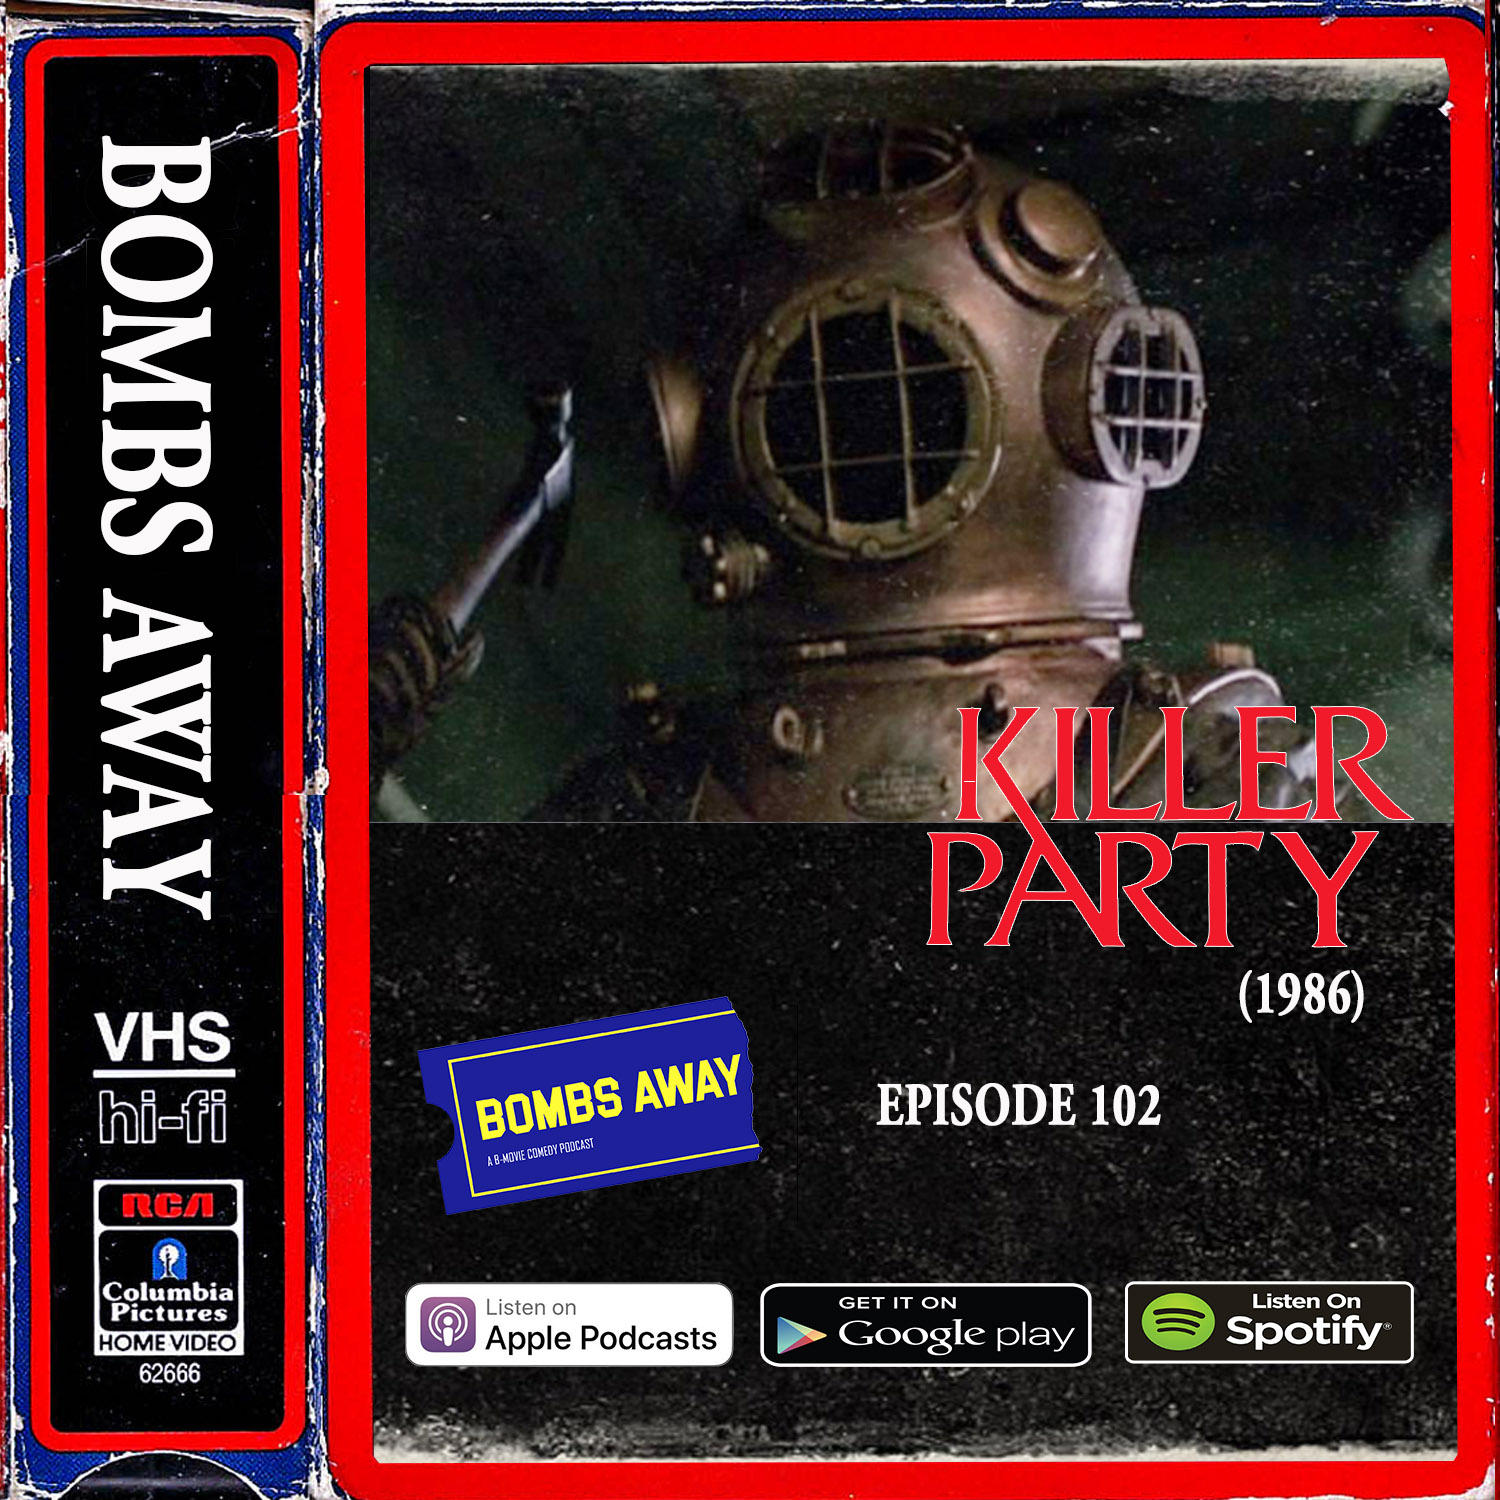 April Fool's Day 2019 - Episode 102 - Killer Party (1986)